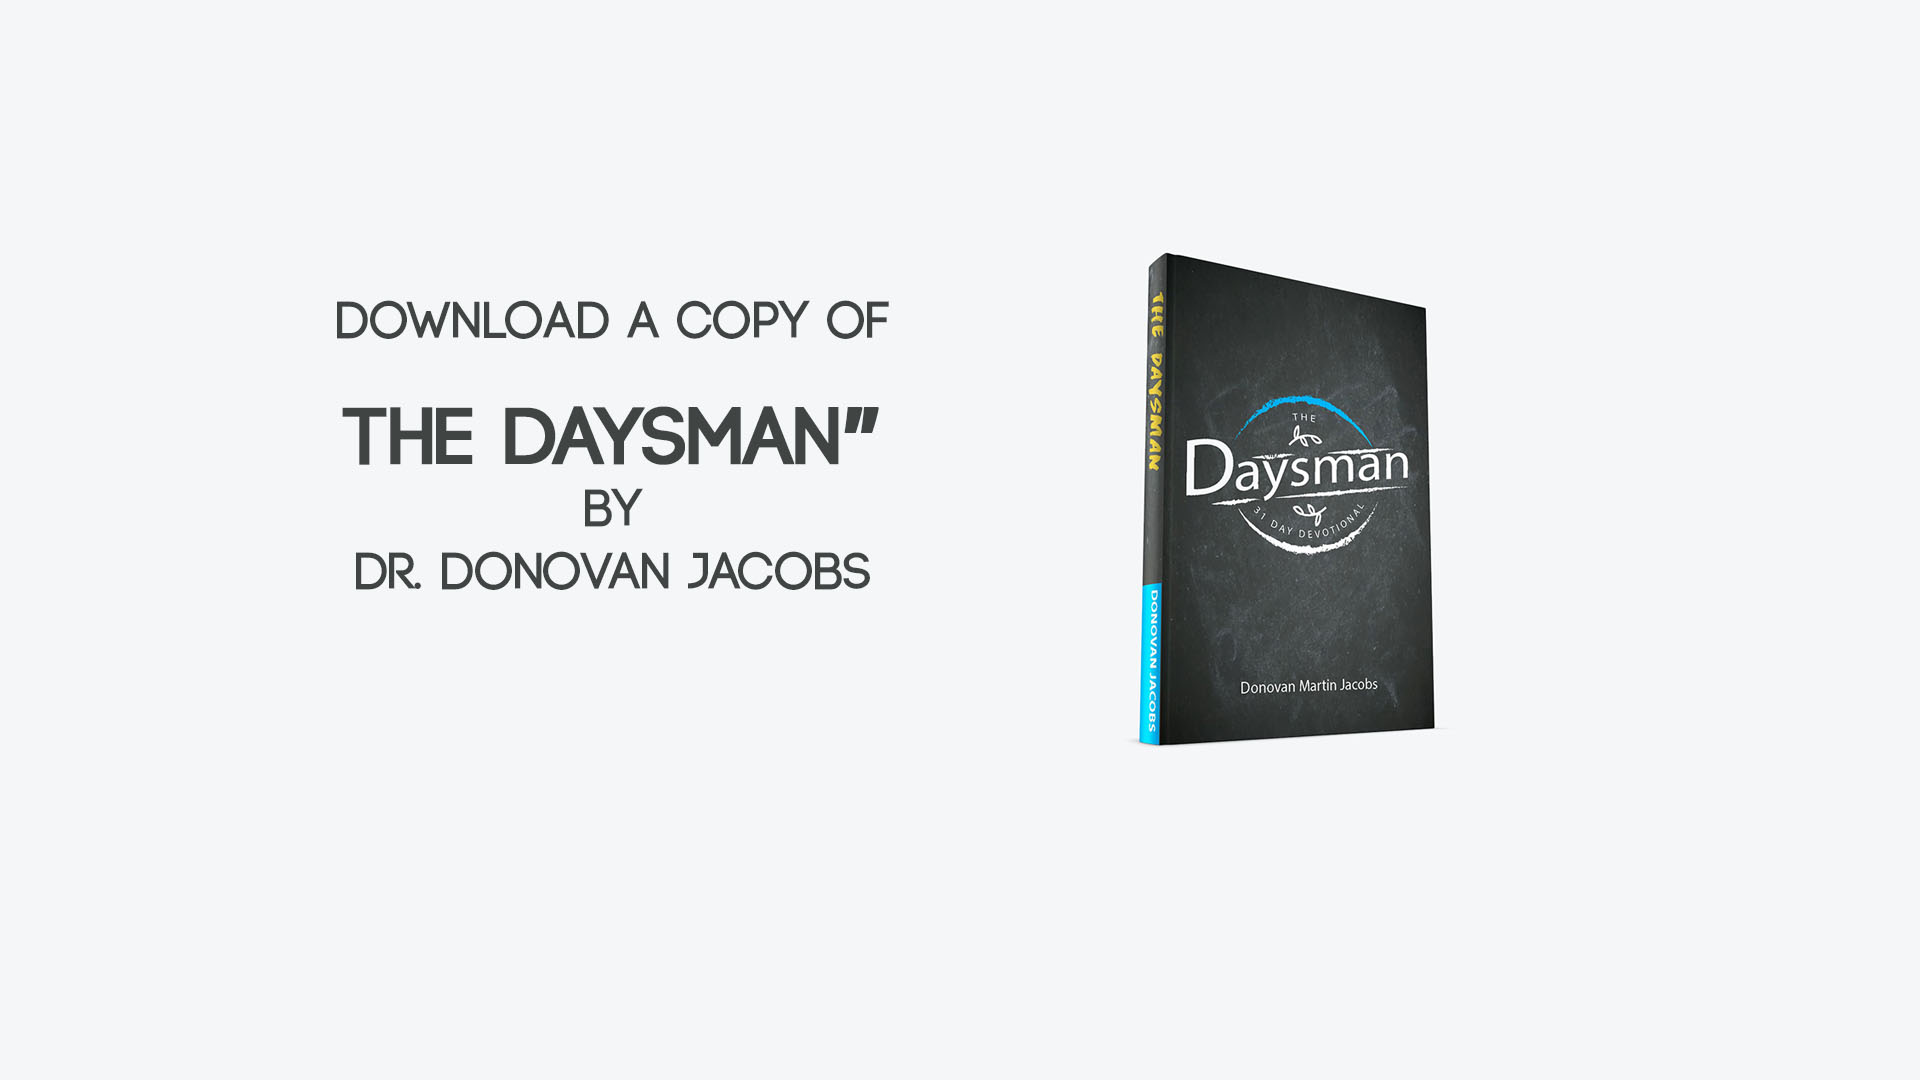 fp_book_daysman_slider_3